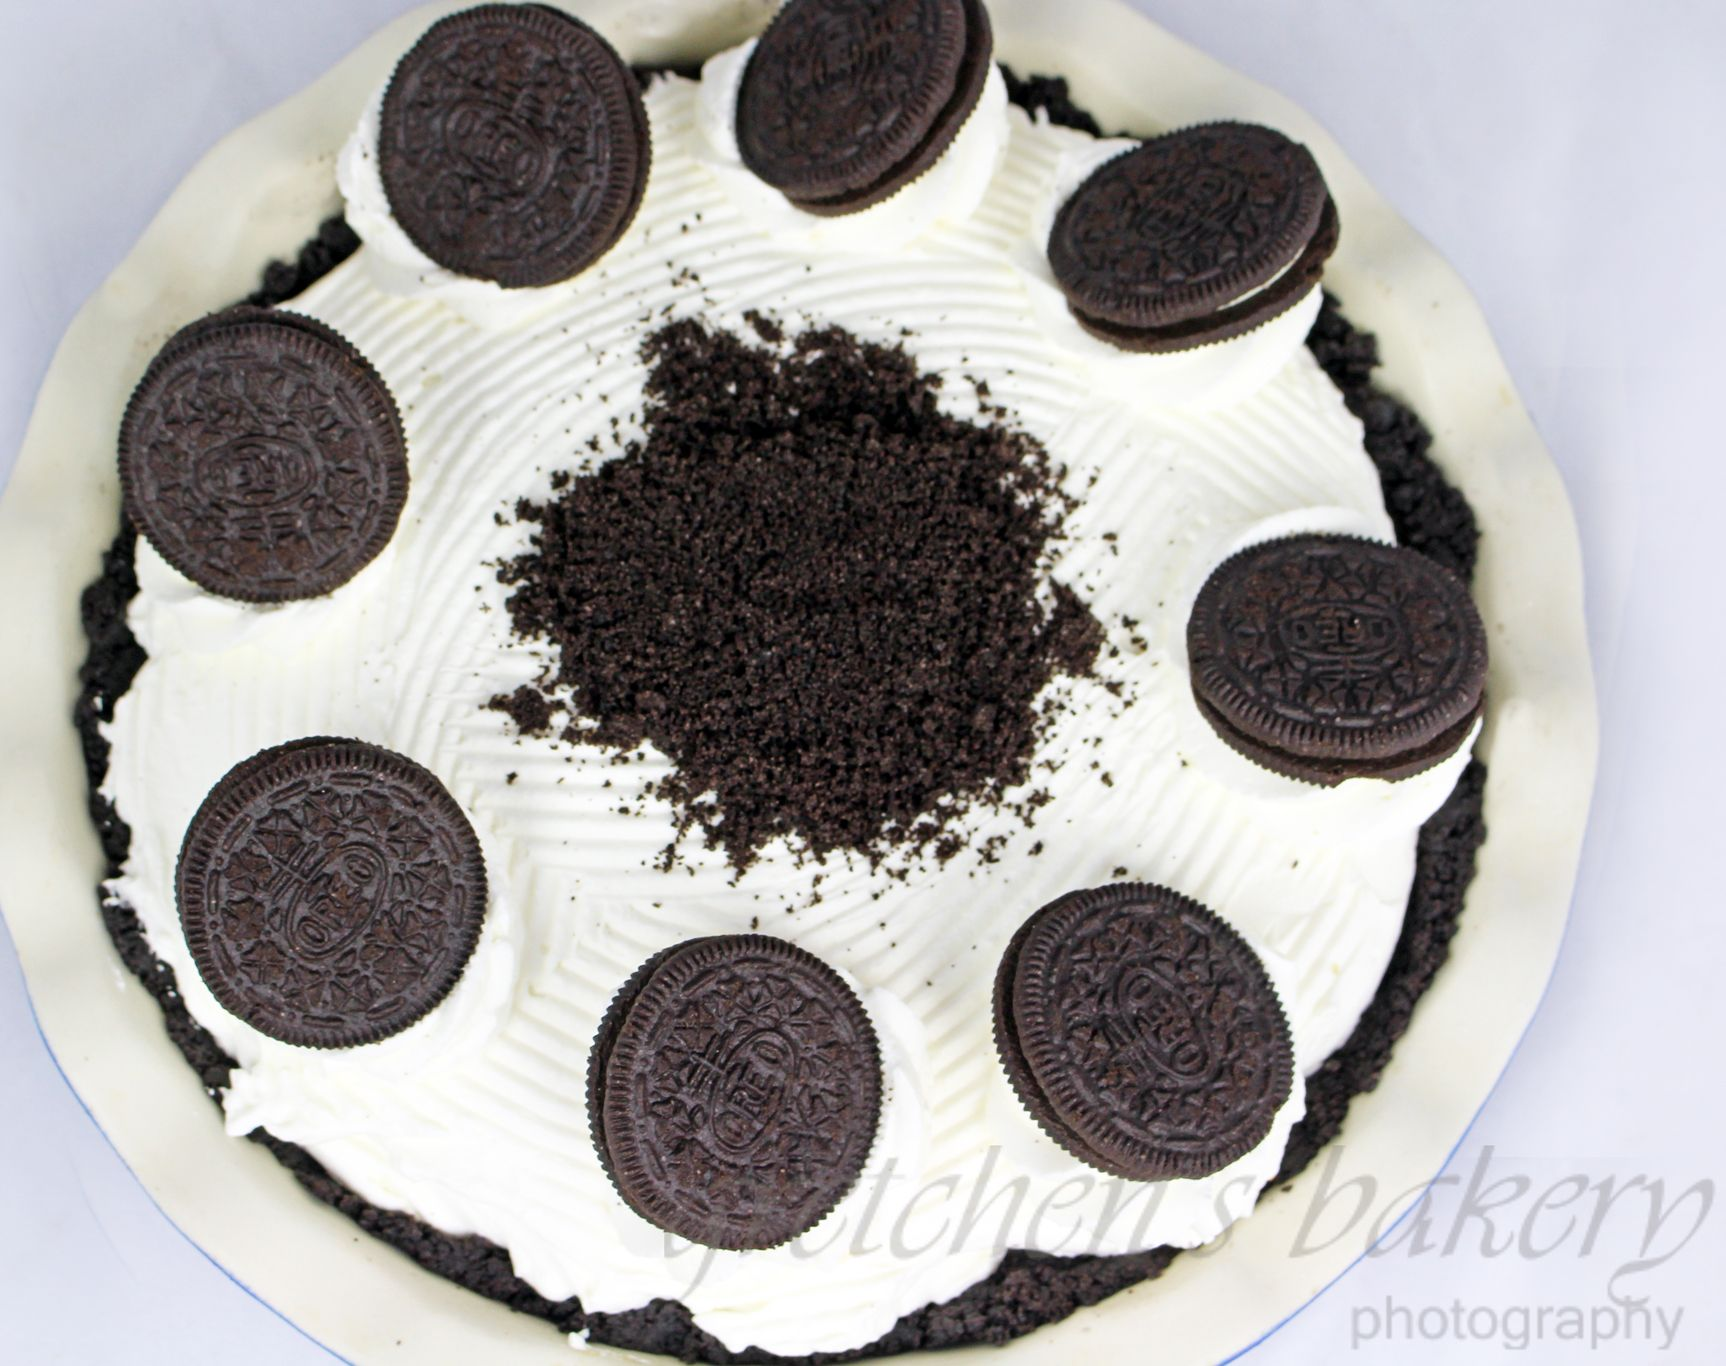 NO BAKE Chocolate Cream Pie with Oreo Crust and homemade chocolate custard piled high with whipped cream. This is a pie you can make in under 2 hours